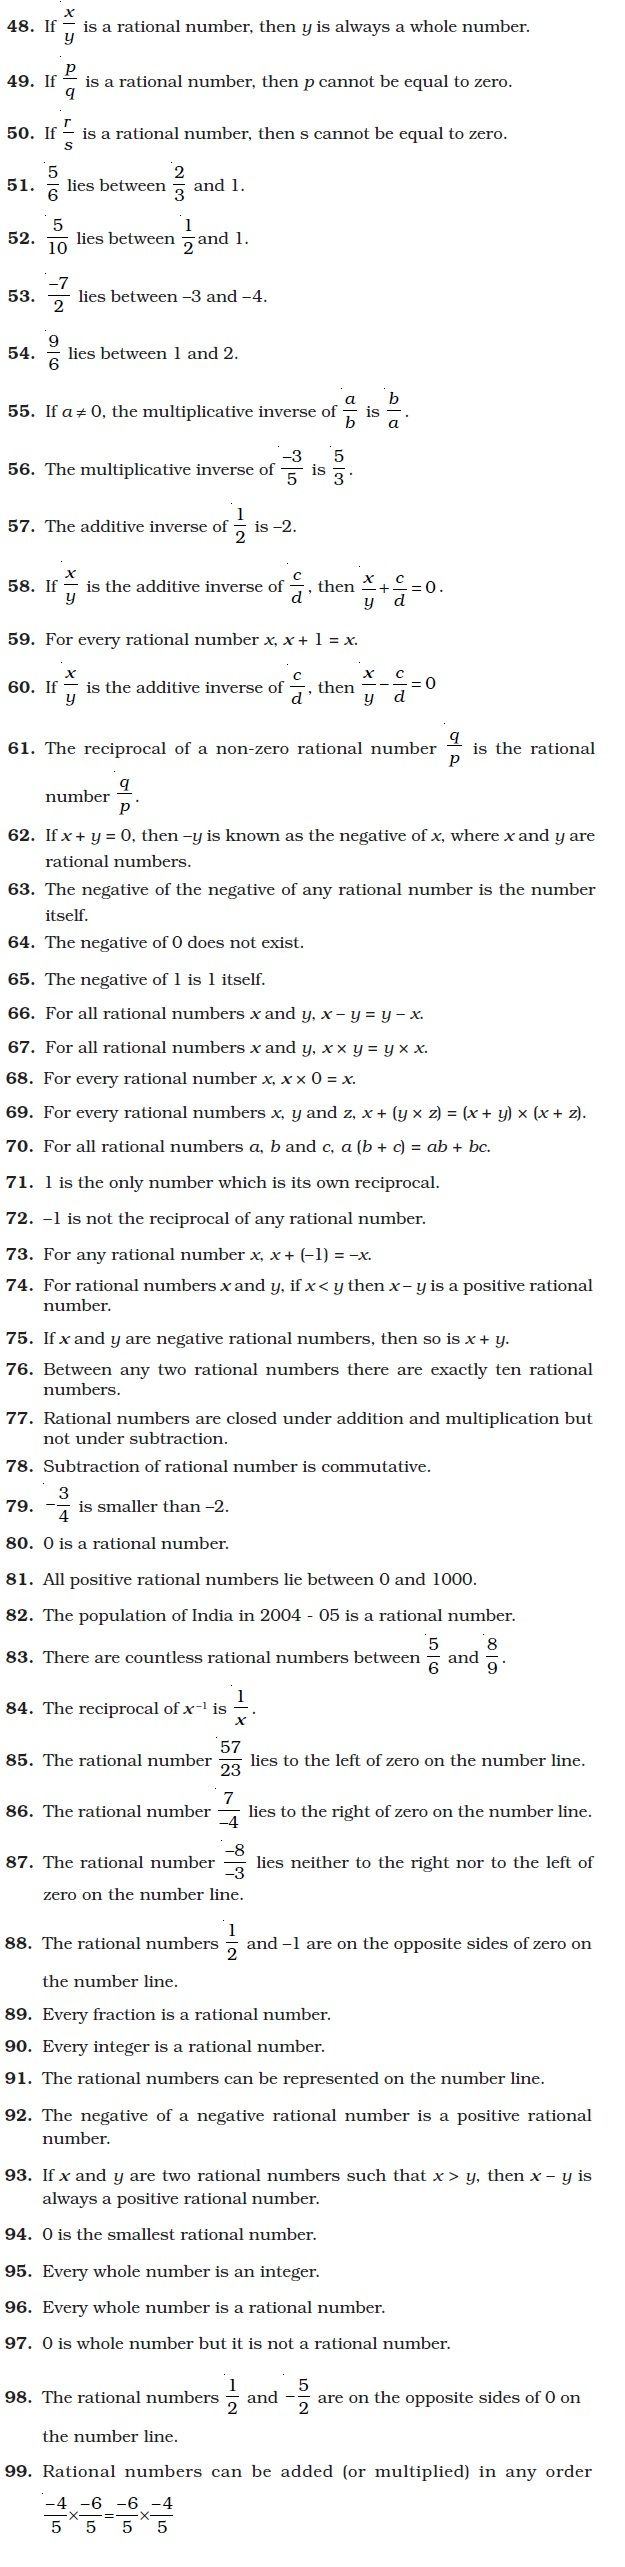 Fresh Ideas - Class 8 Important Questions for Maths Rational Numbers